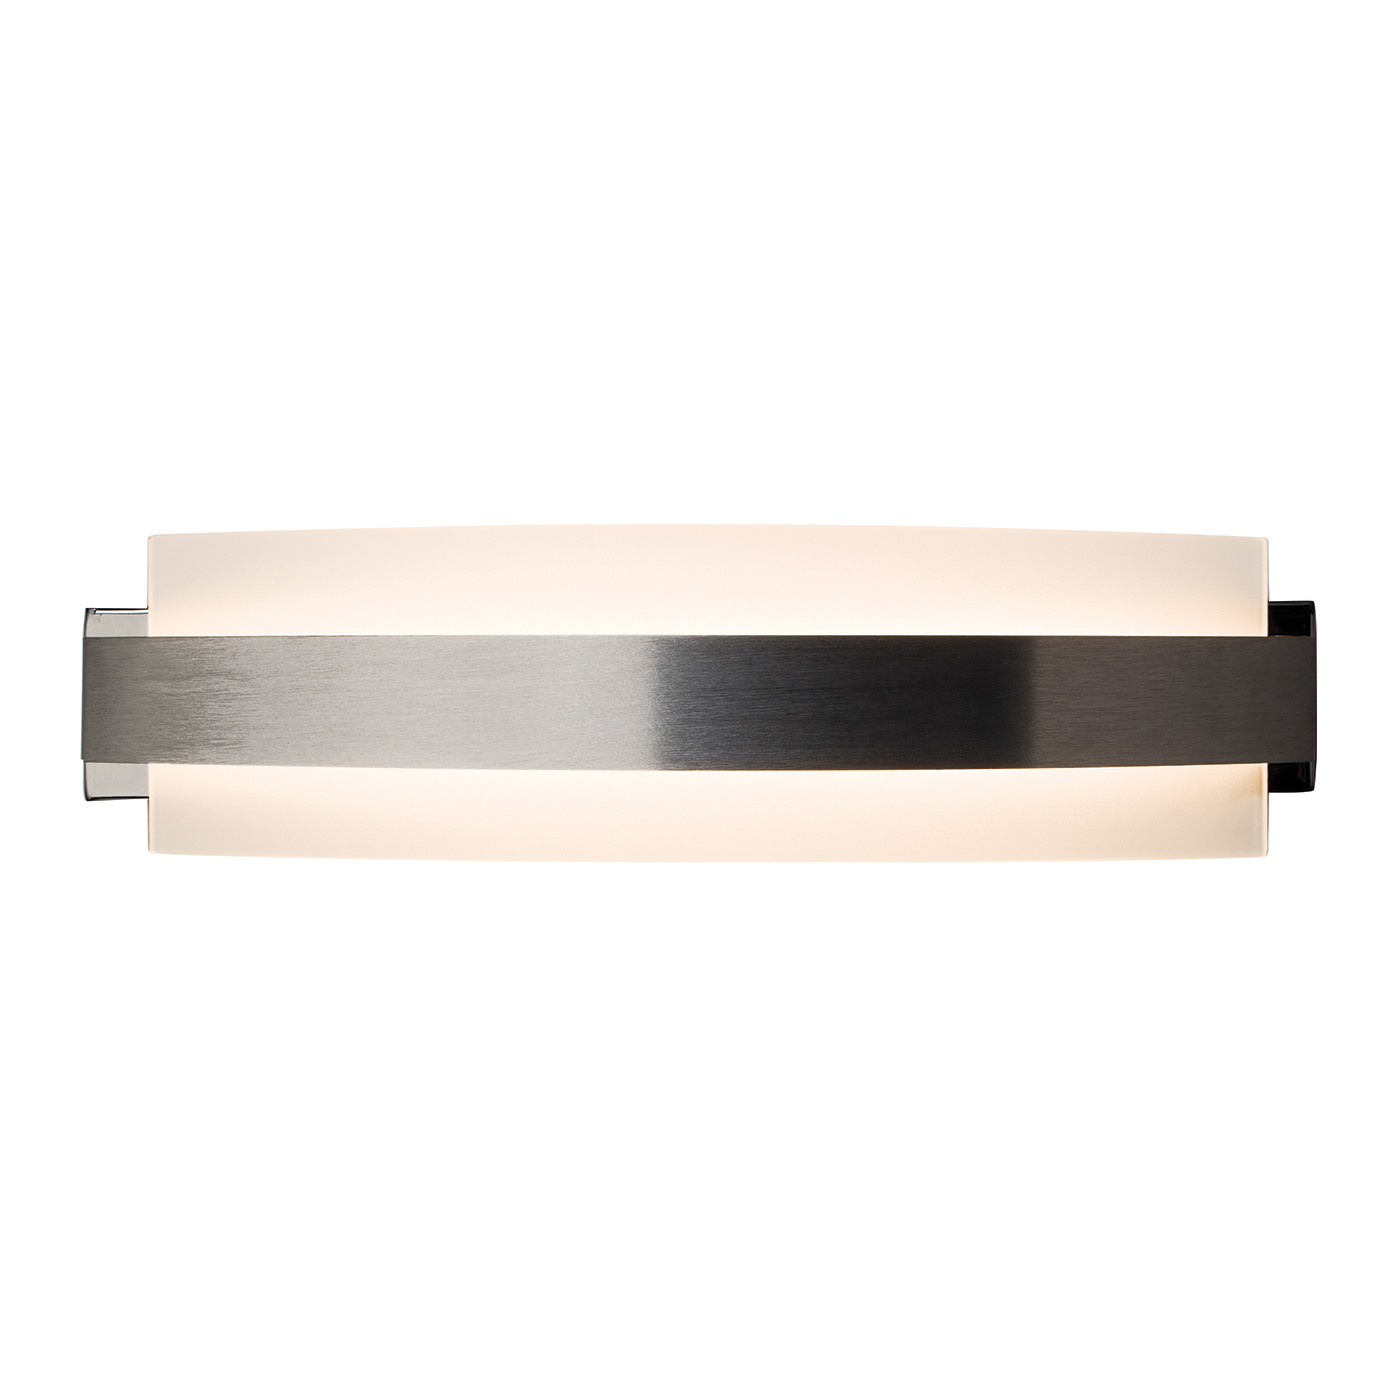 Endon Matson 1lt 350mm wall light 7W Brushed aluminium & frosted glass Thumbnail 1